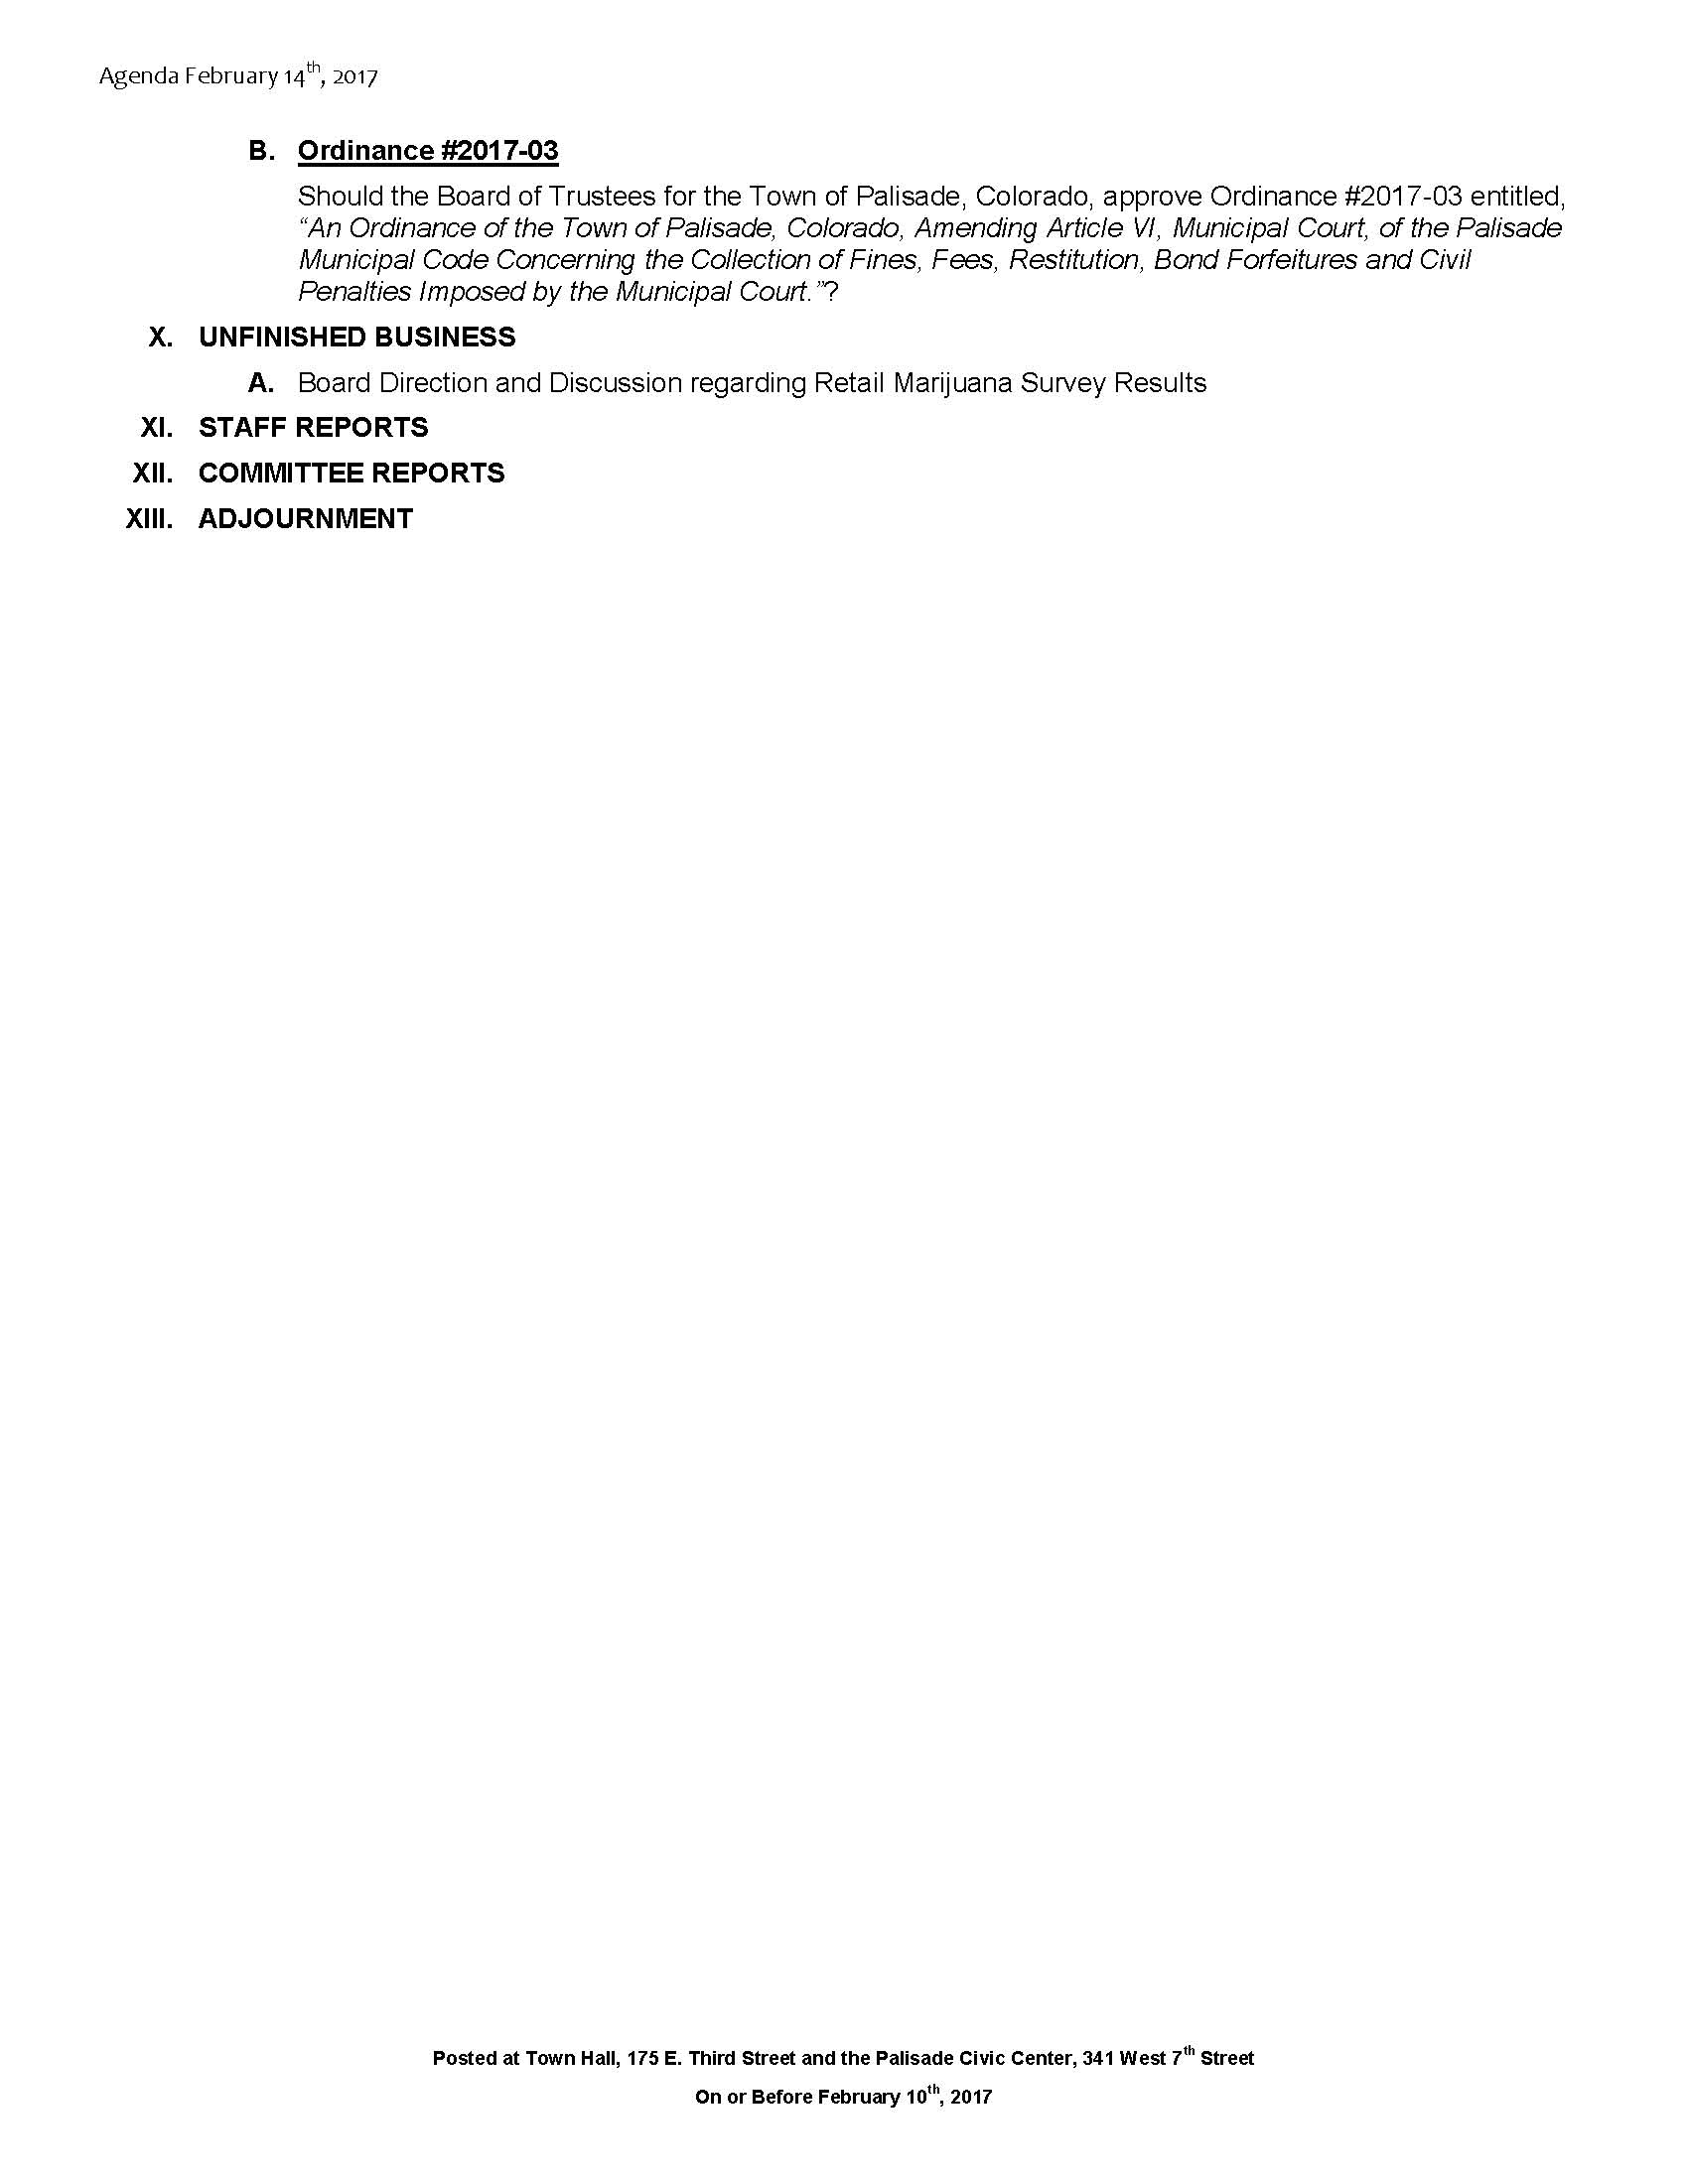 February 14th 2017 Board Meeting Agenda Page 2